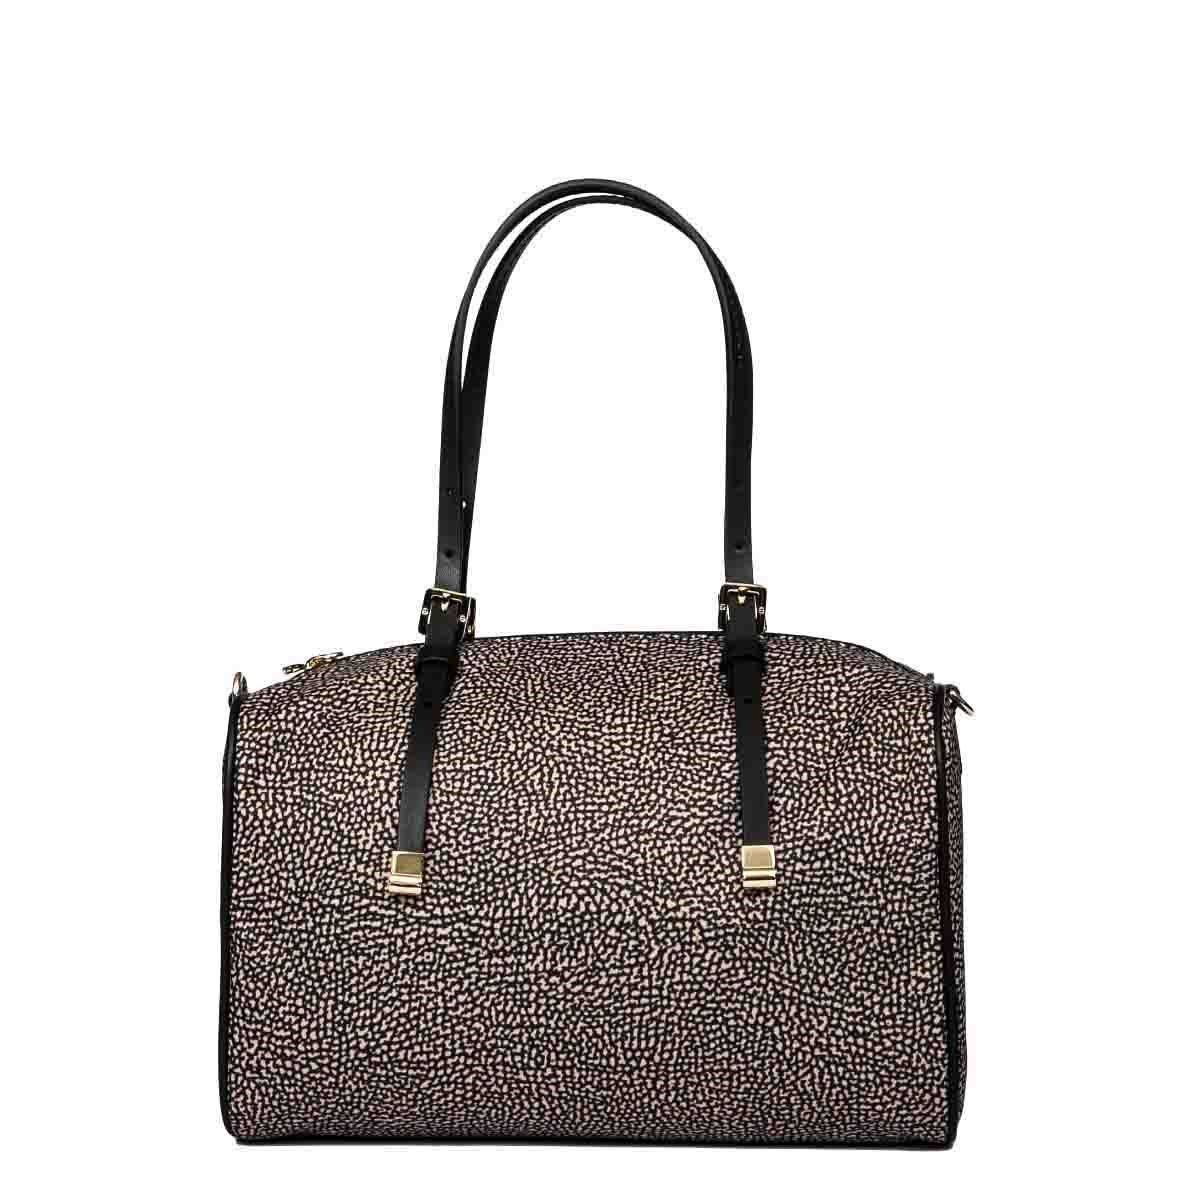 BORBONESE Handbags BORBONESE WOMEN'S BROWN POLYESTER HANDBAG